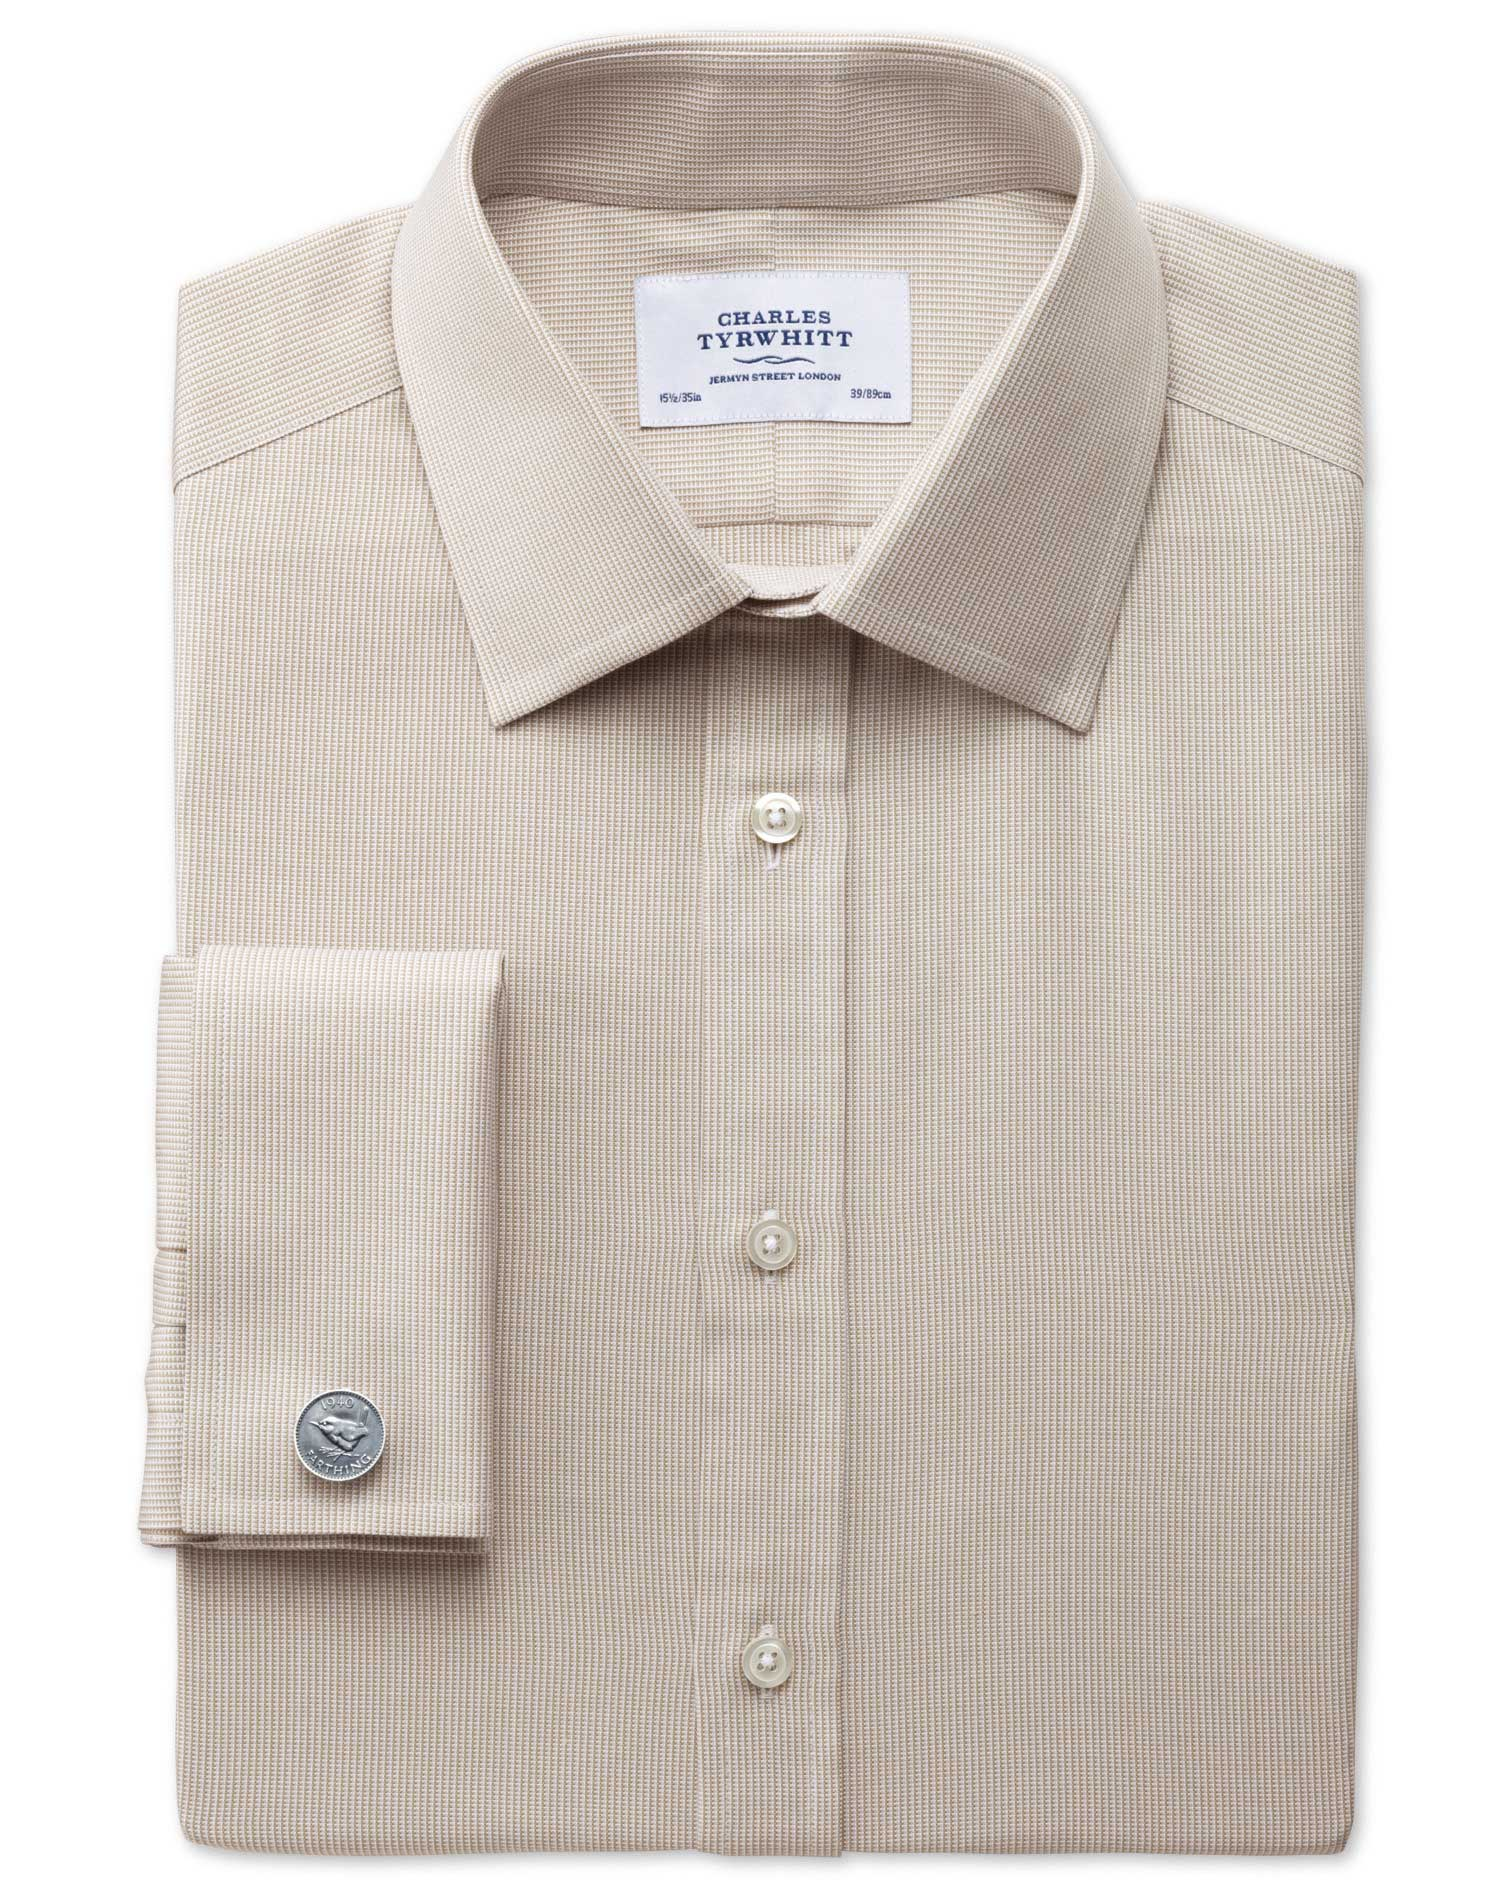 Classic Fit Oxford Stone Cotton Formal Shirt Double Cuff Size 15.5/37 by Charles Tyrwhitt